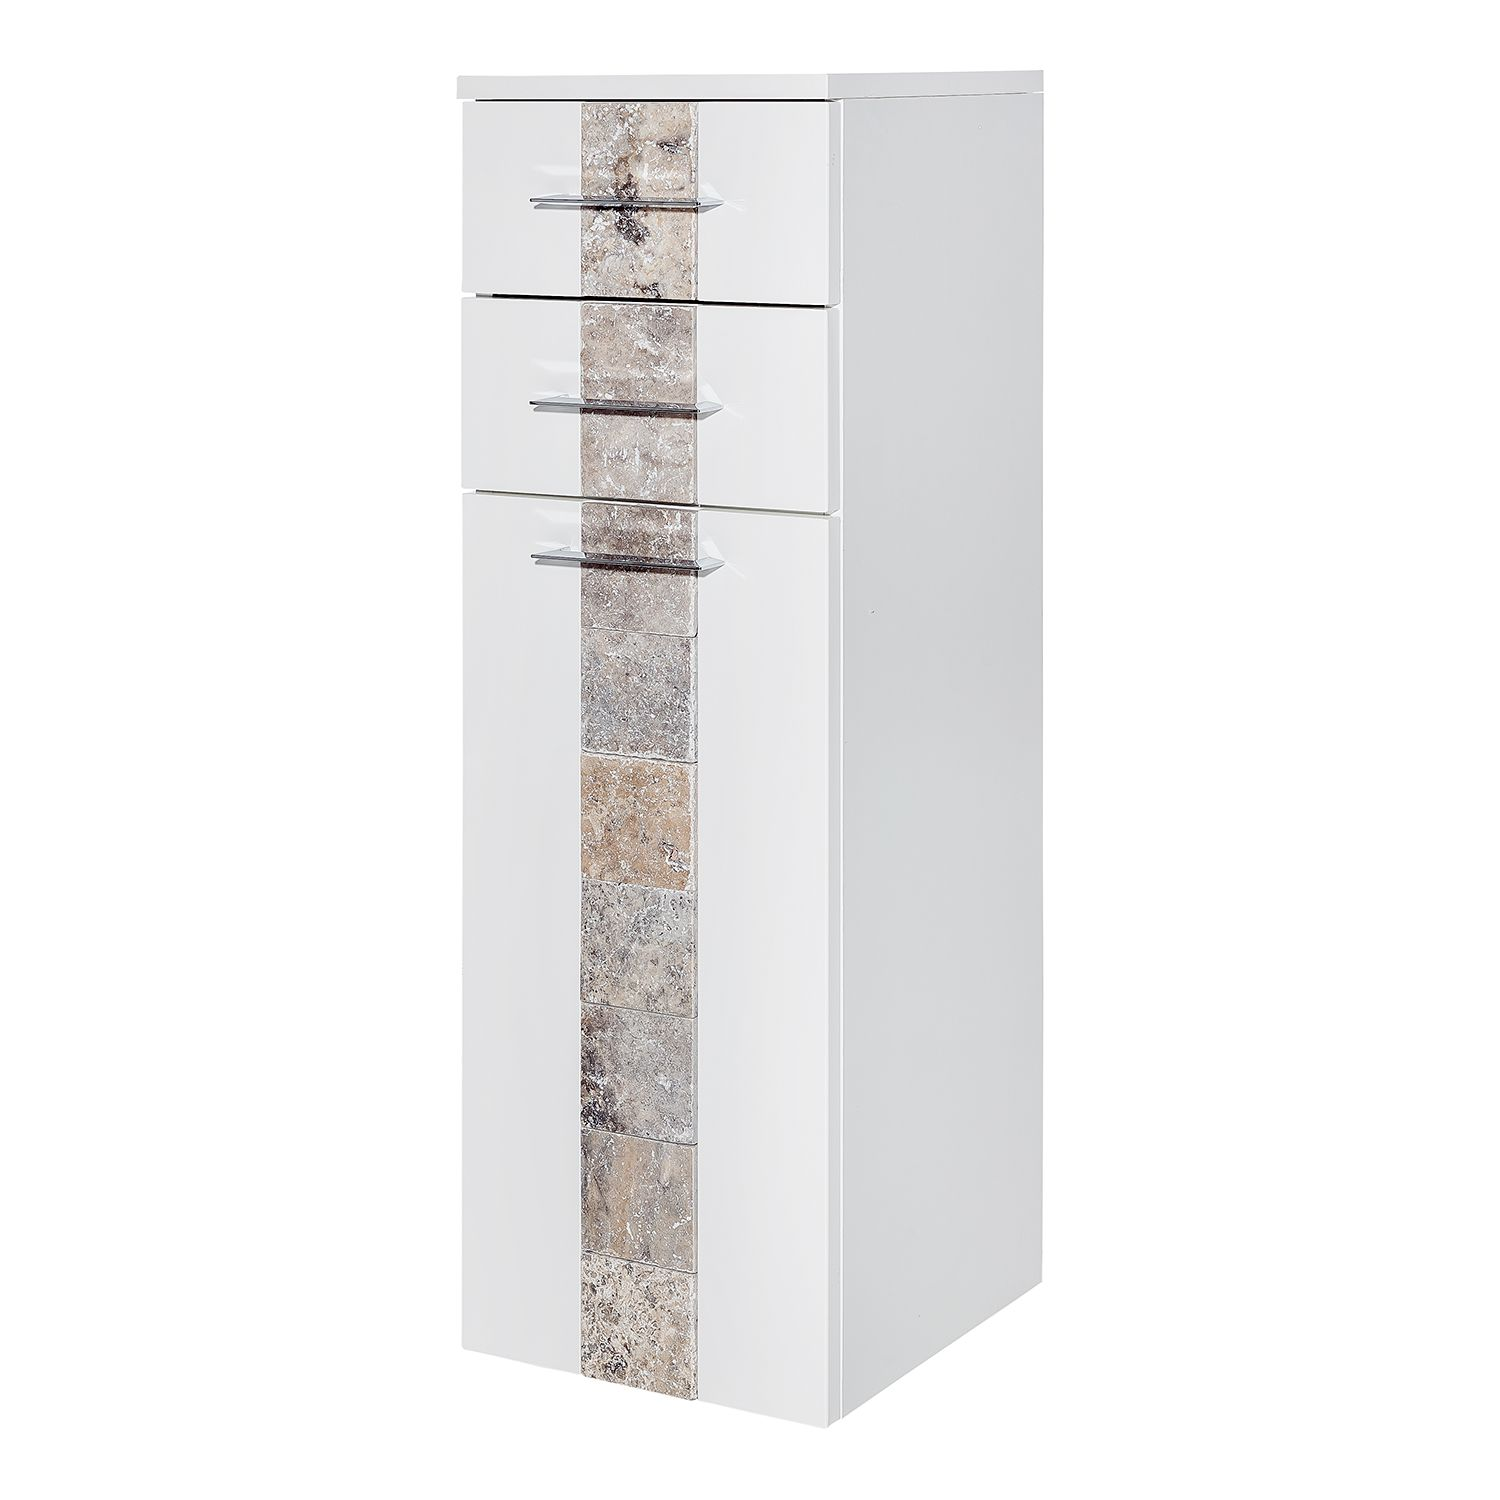 Armoire midi Stone - Blanc brillant / Granite, Schildmeyer